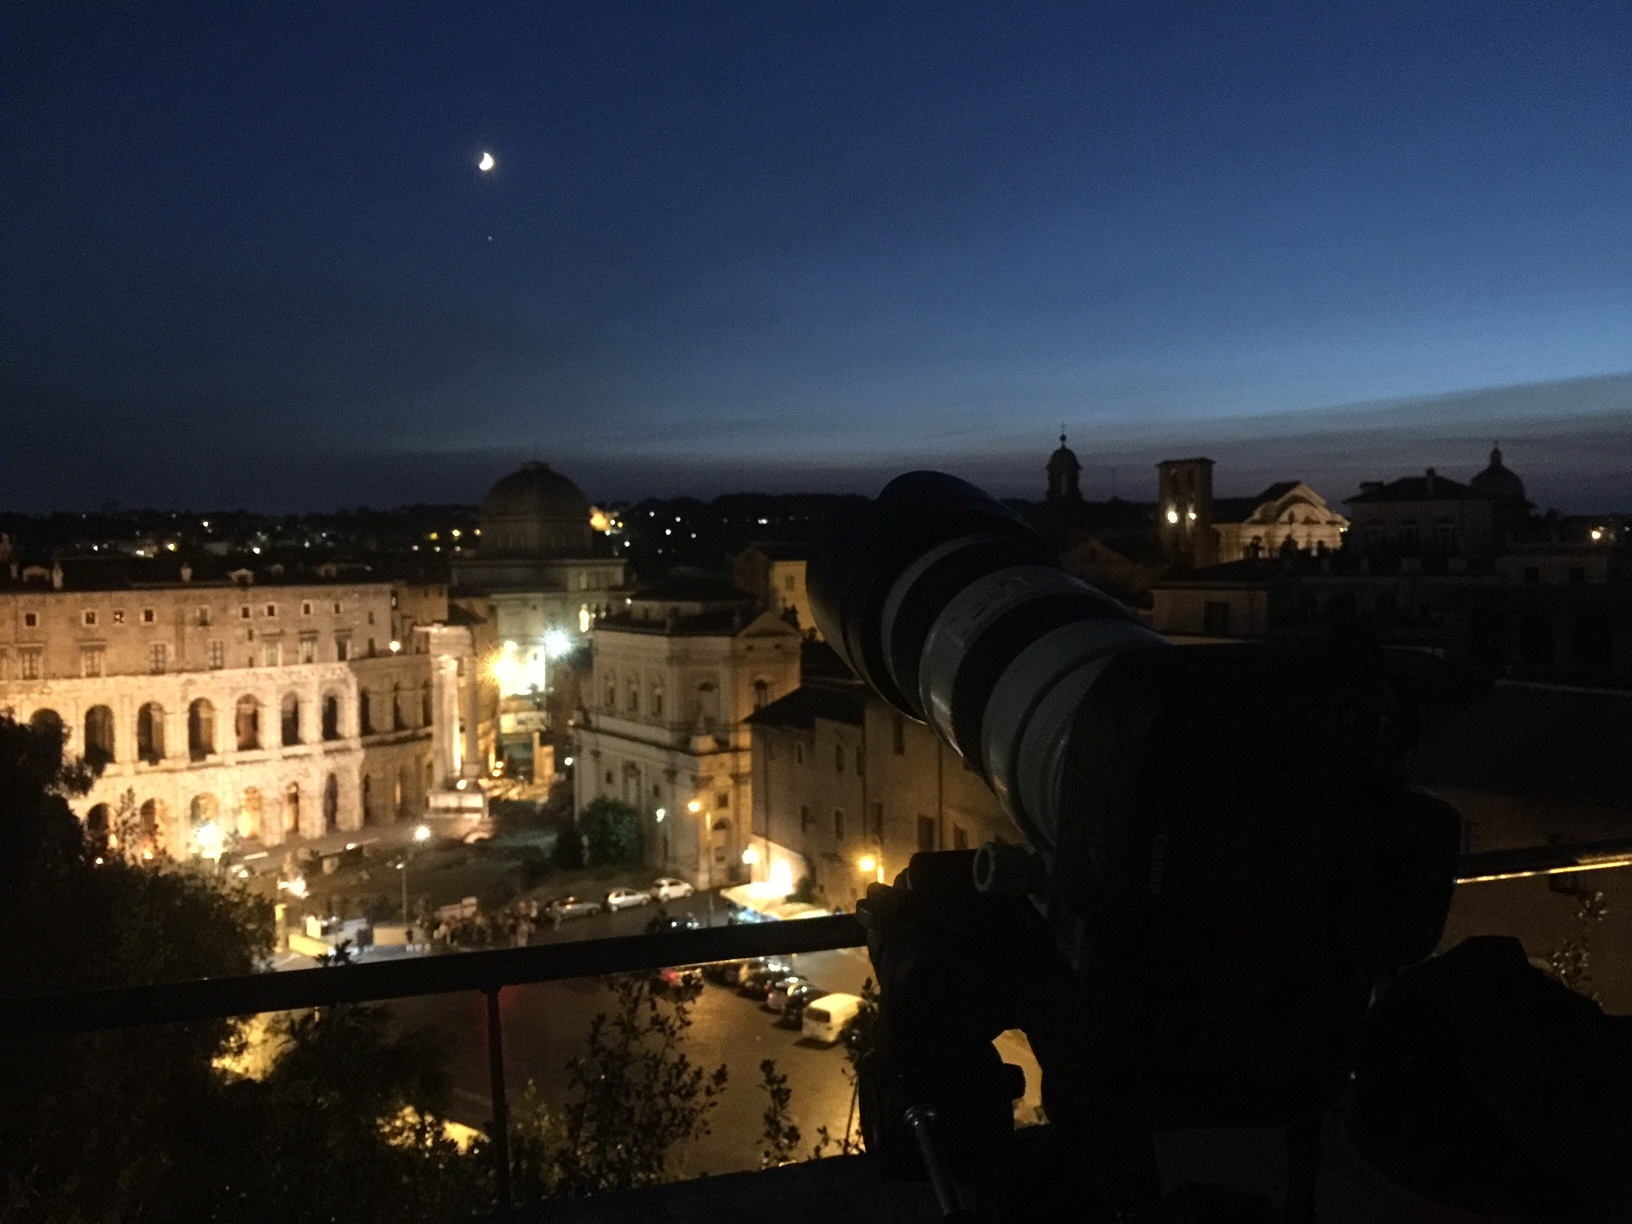 The Moon meets Jupiter: a nice conjunction above Rome - 25